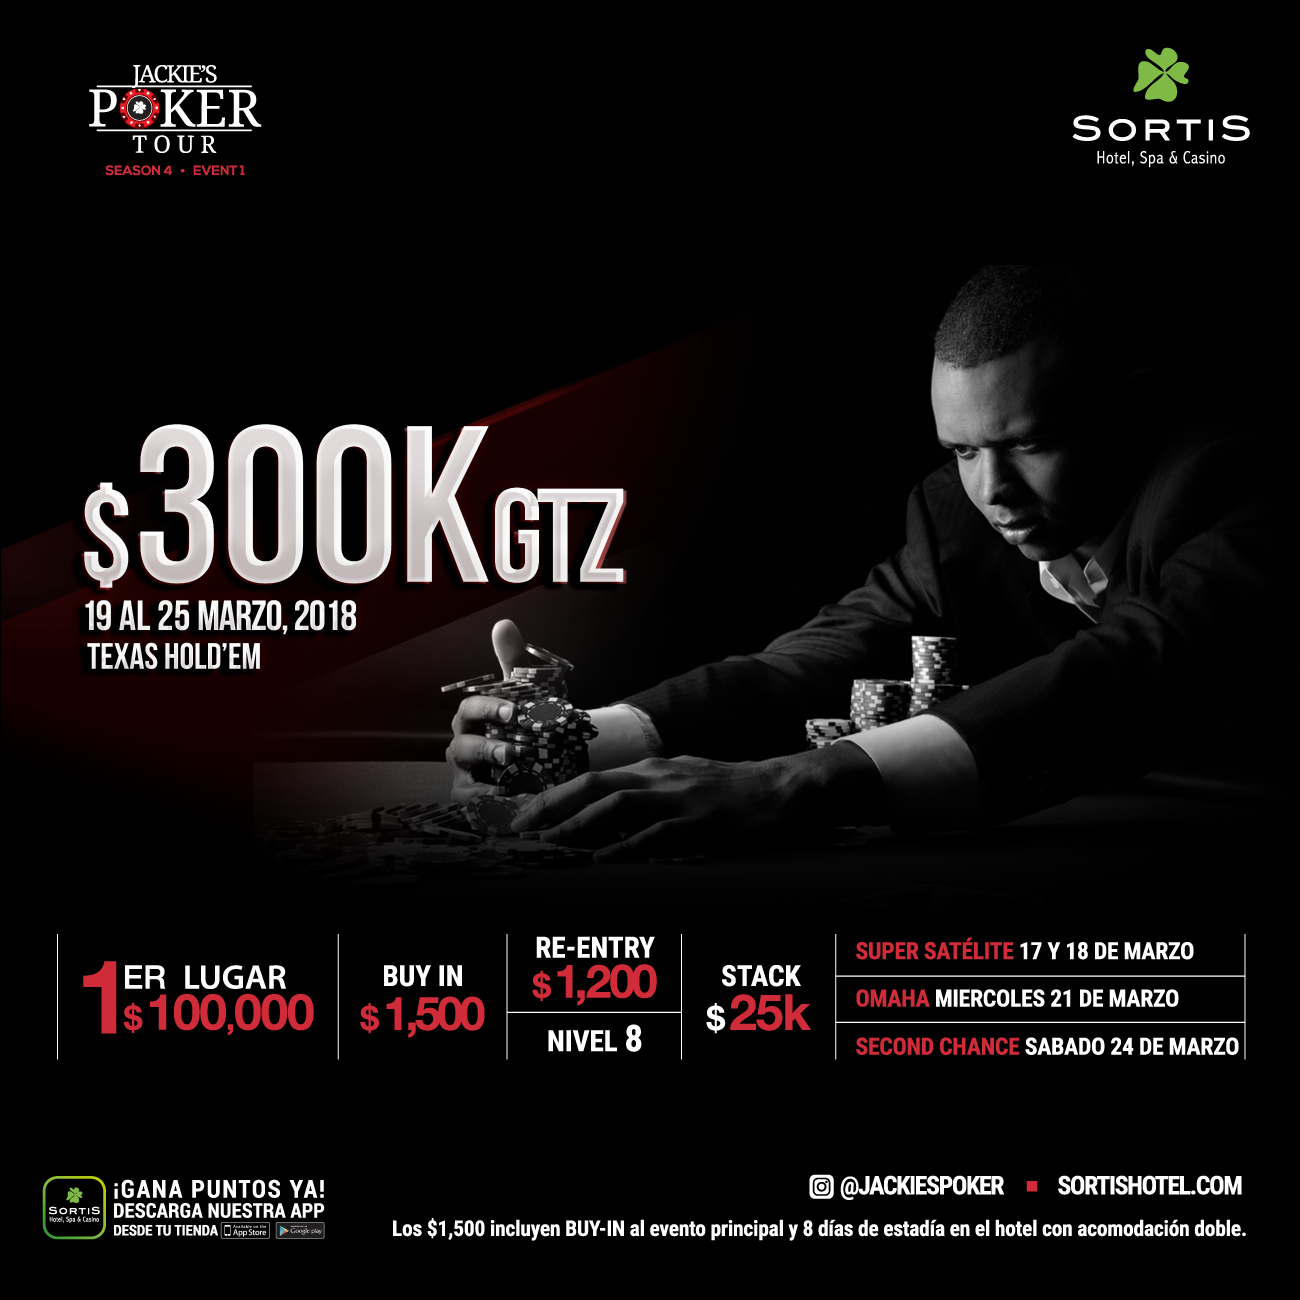 Jackies Poker Tour $300K GTZ. Season 4 - Event 1